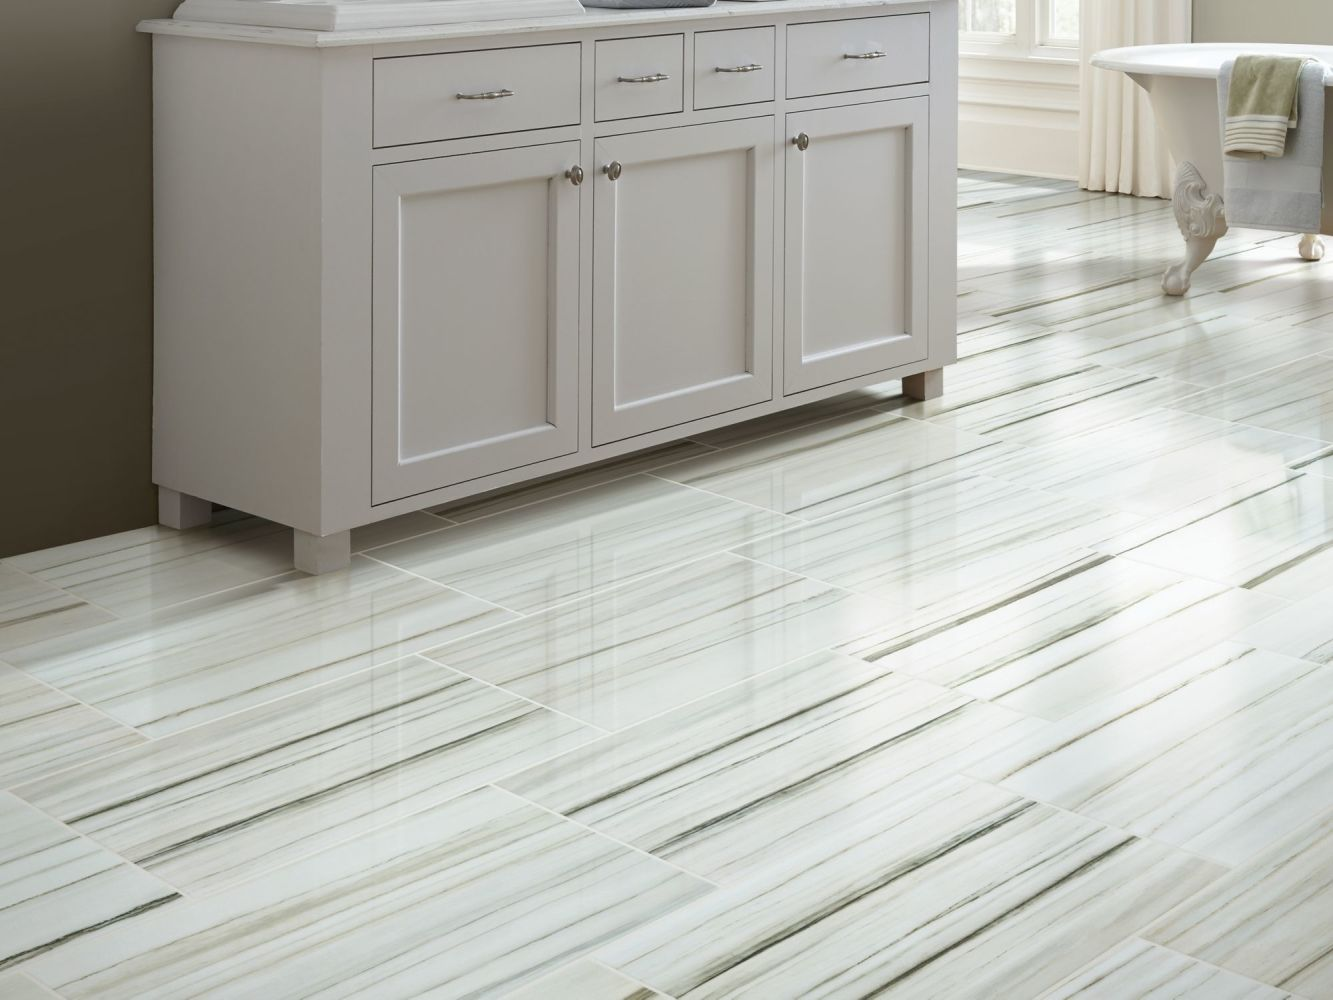 Shaw Floors Ceramic Solutions Range 16×32 Polished Zebrino 00155_CS39W